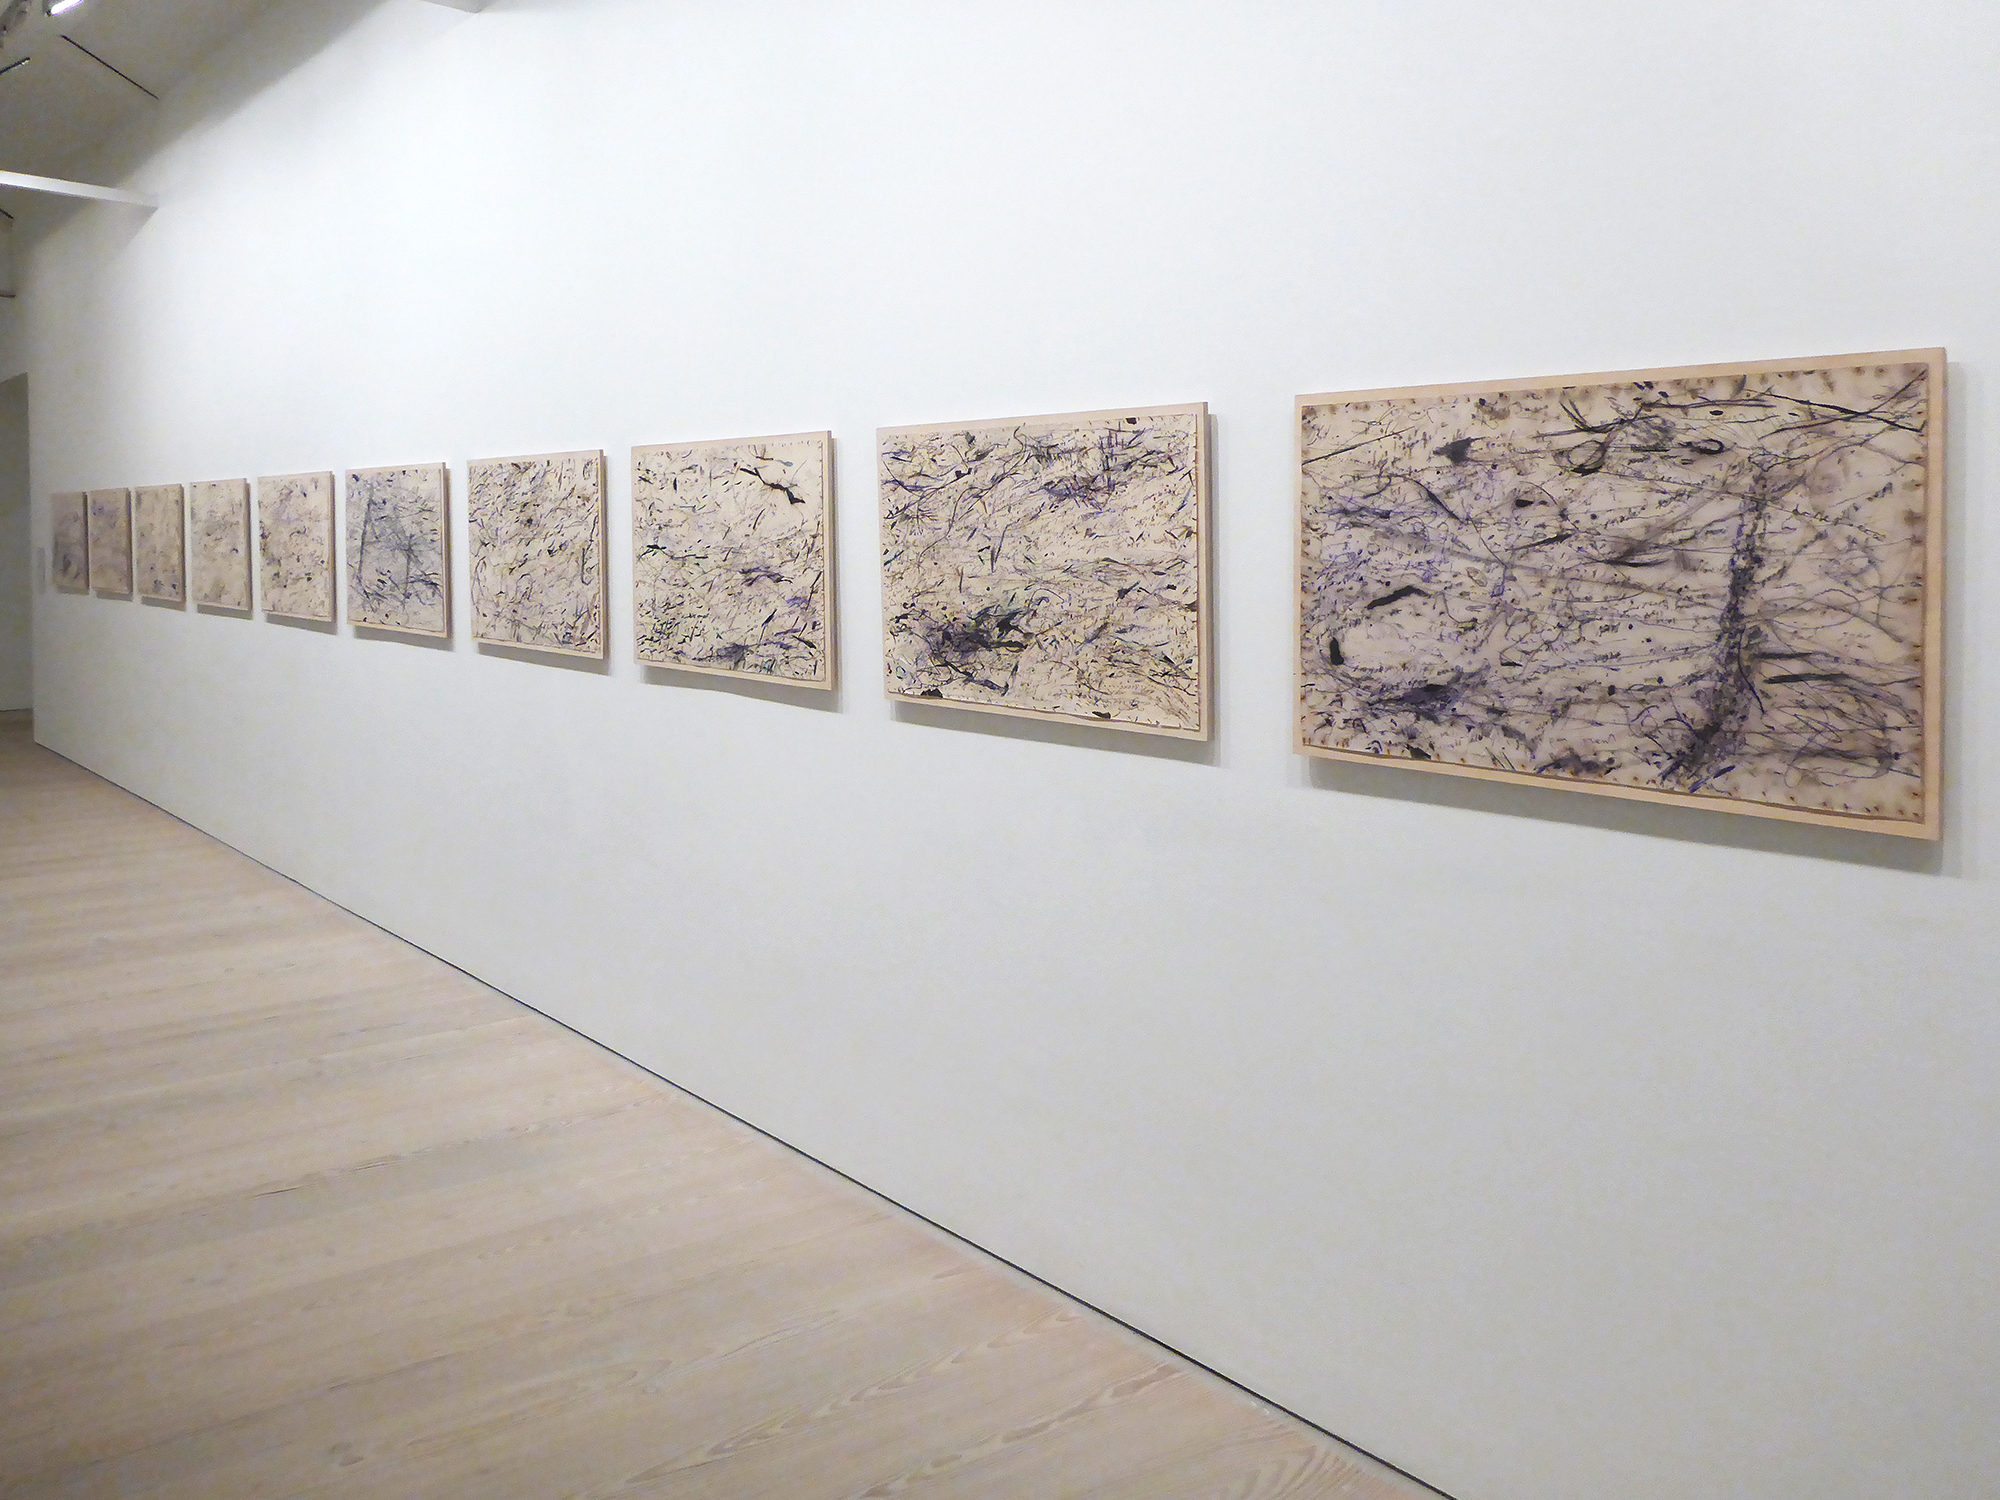 Saatchi Gallery Installation view 1.jpg